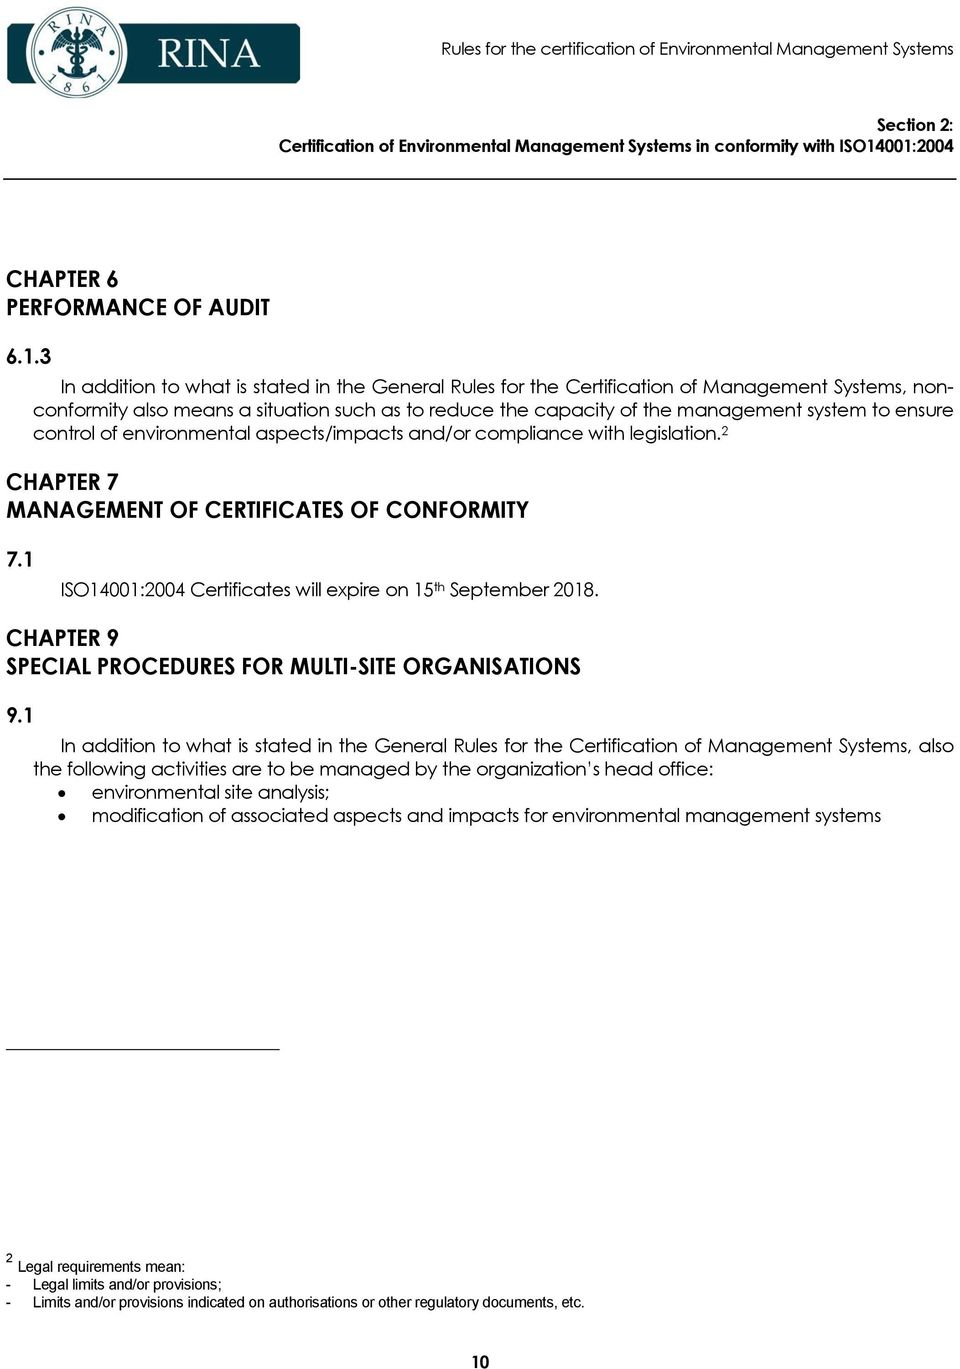 the capacity of the management system to ensure control of environmental aspects/impacts and/or compliance with legislation. 2 CHAPTER 7 MANAGEMENT OF CERTIFICATES OF CONFORMITY 7.